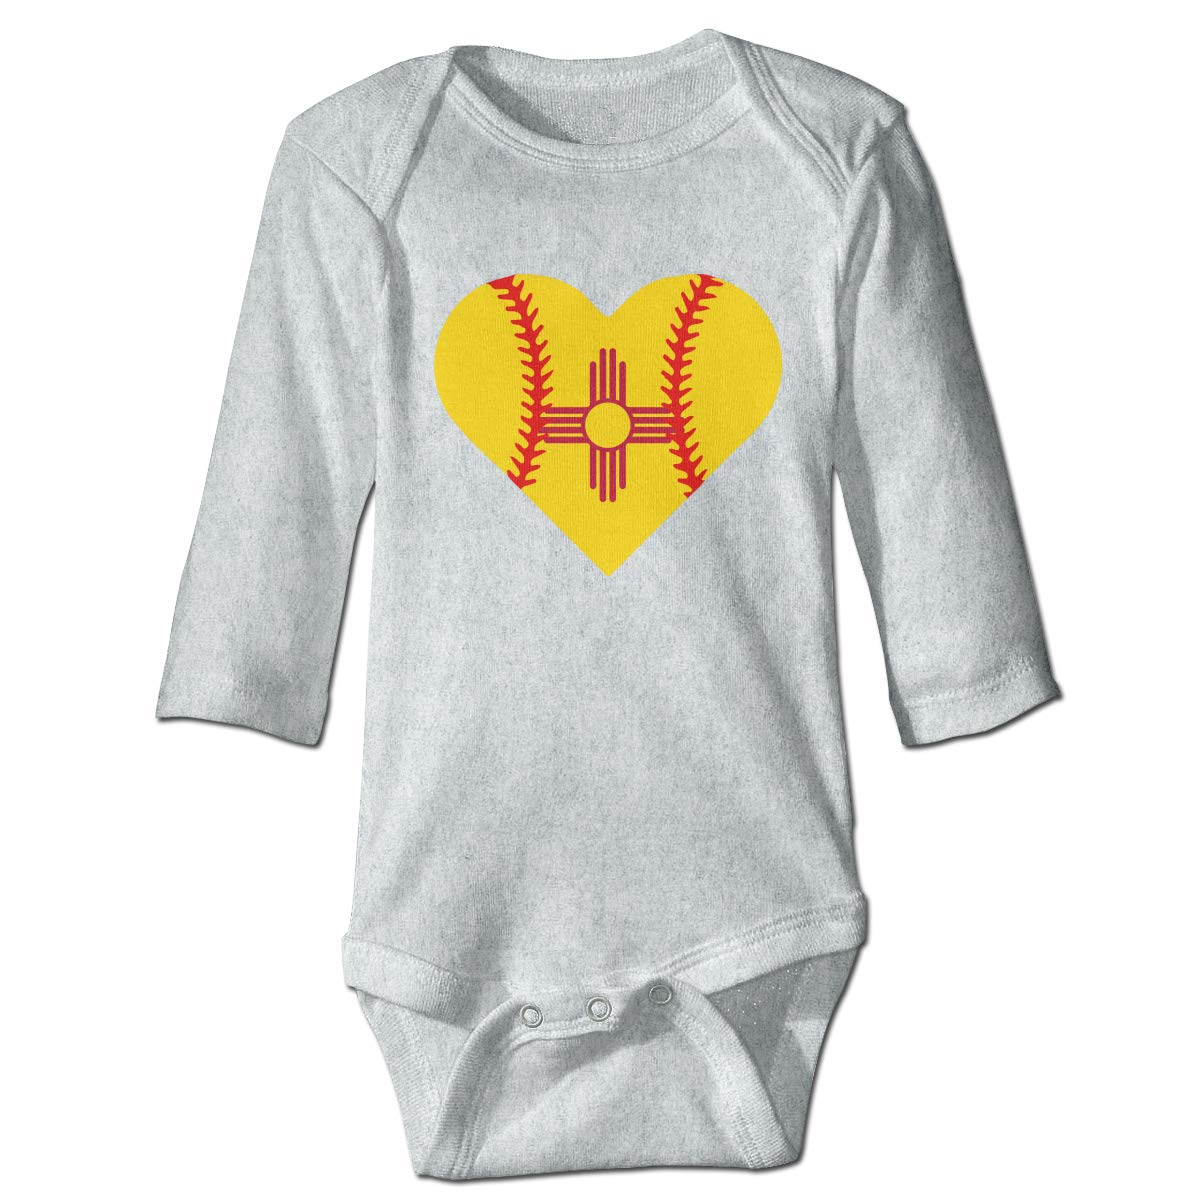 A14UBP Newborn Baby Boys Girls Long Sleeve Baby Clothes New Mexico Flag Baseball Heart Unisex Button Playsuit Outfit Clothes